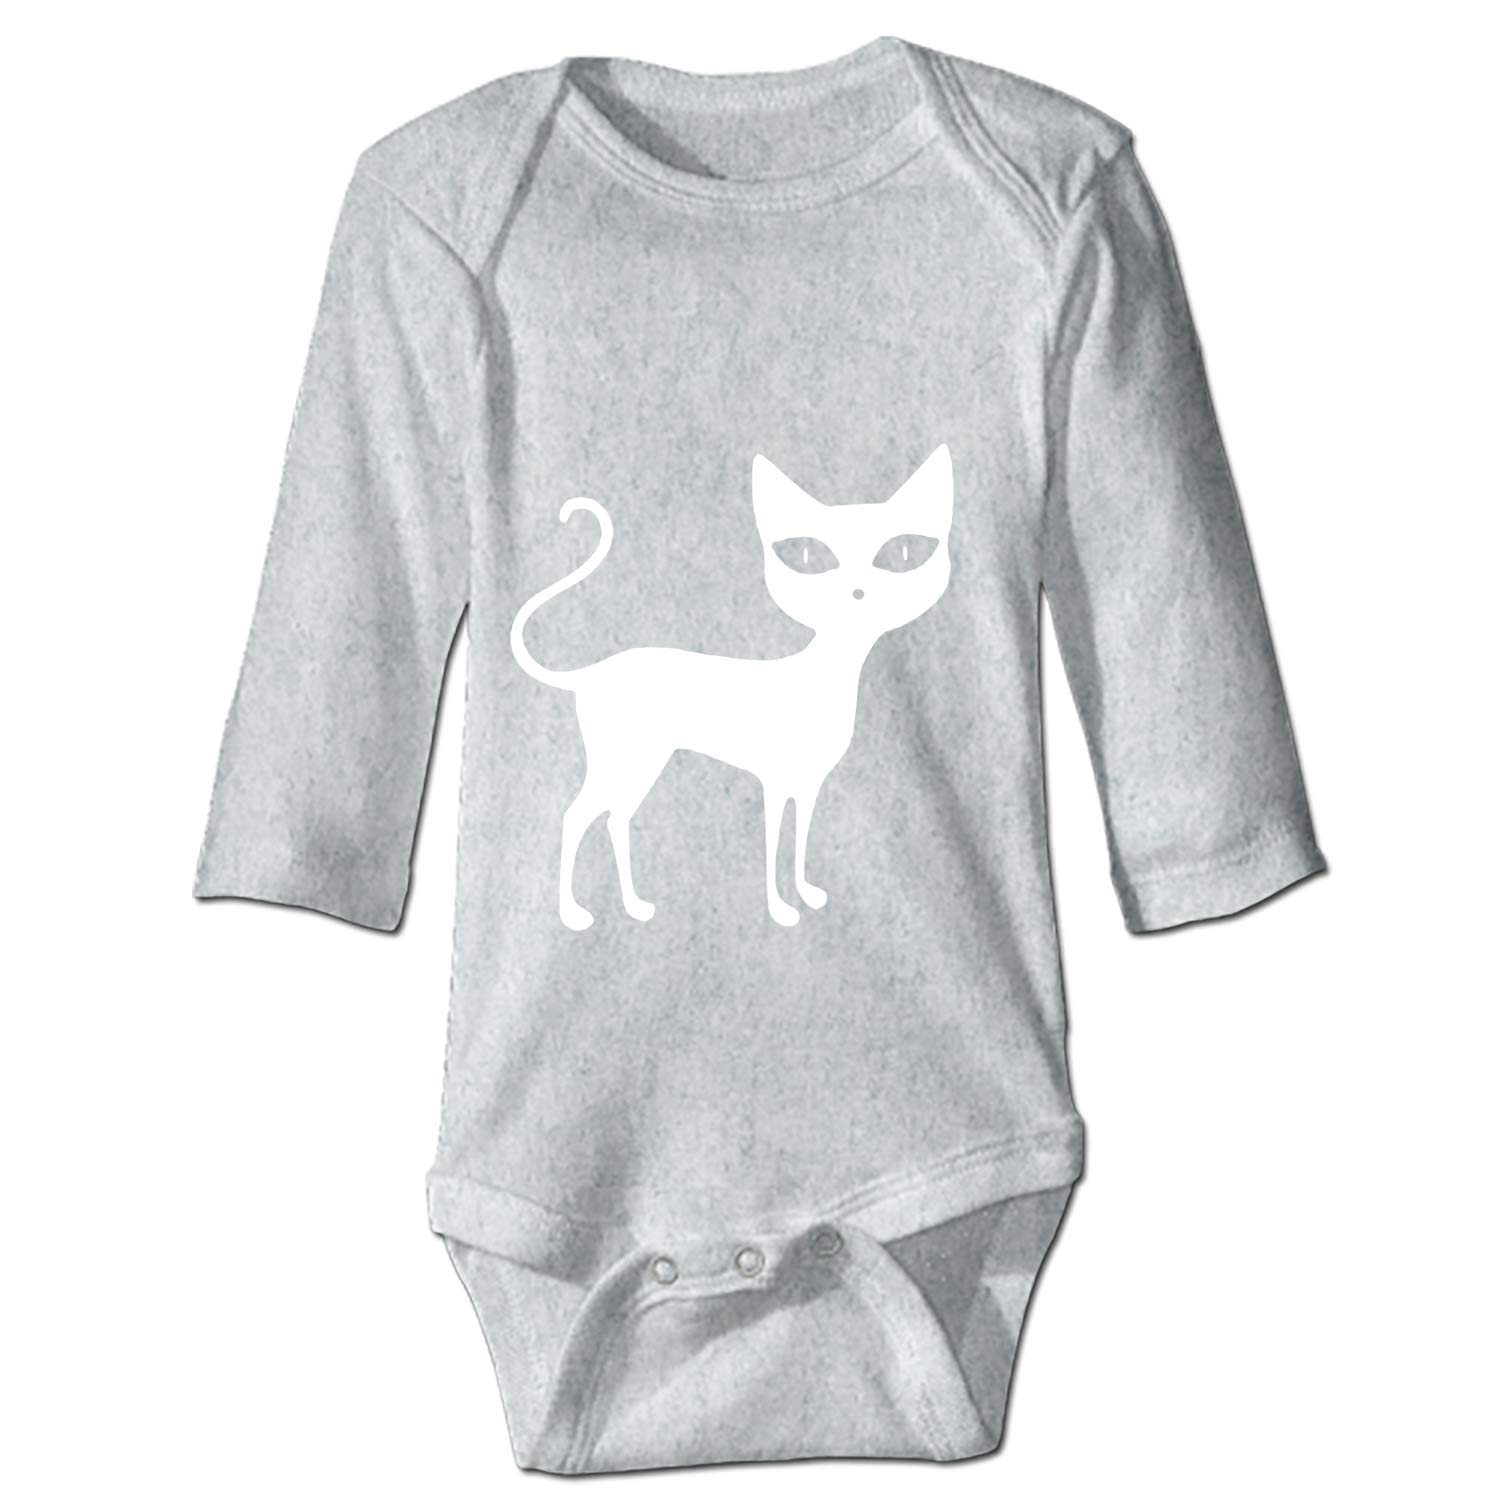 SFHU Baby Cotton Bodysuits Cute Baphomet Long-Sleeve One-Piece Suit